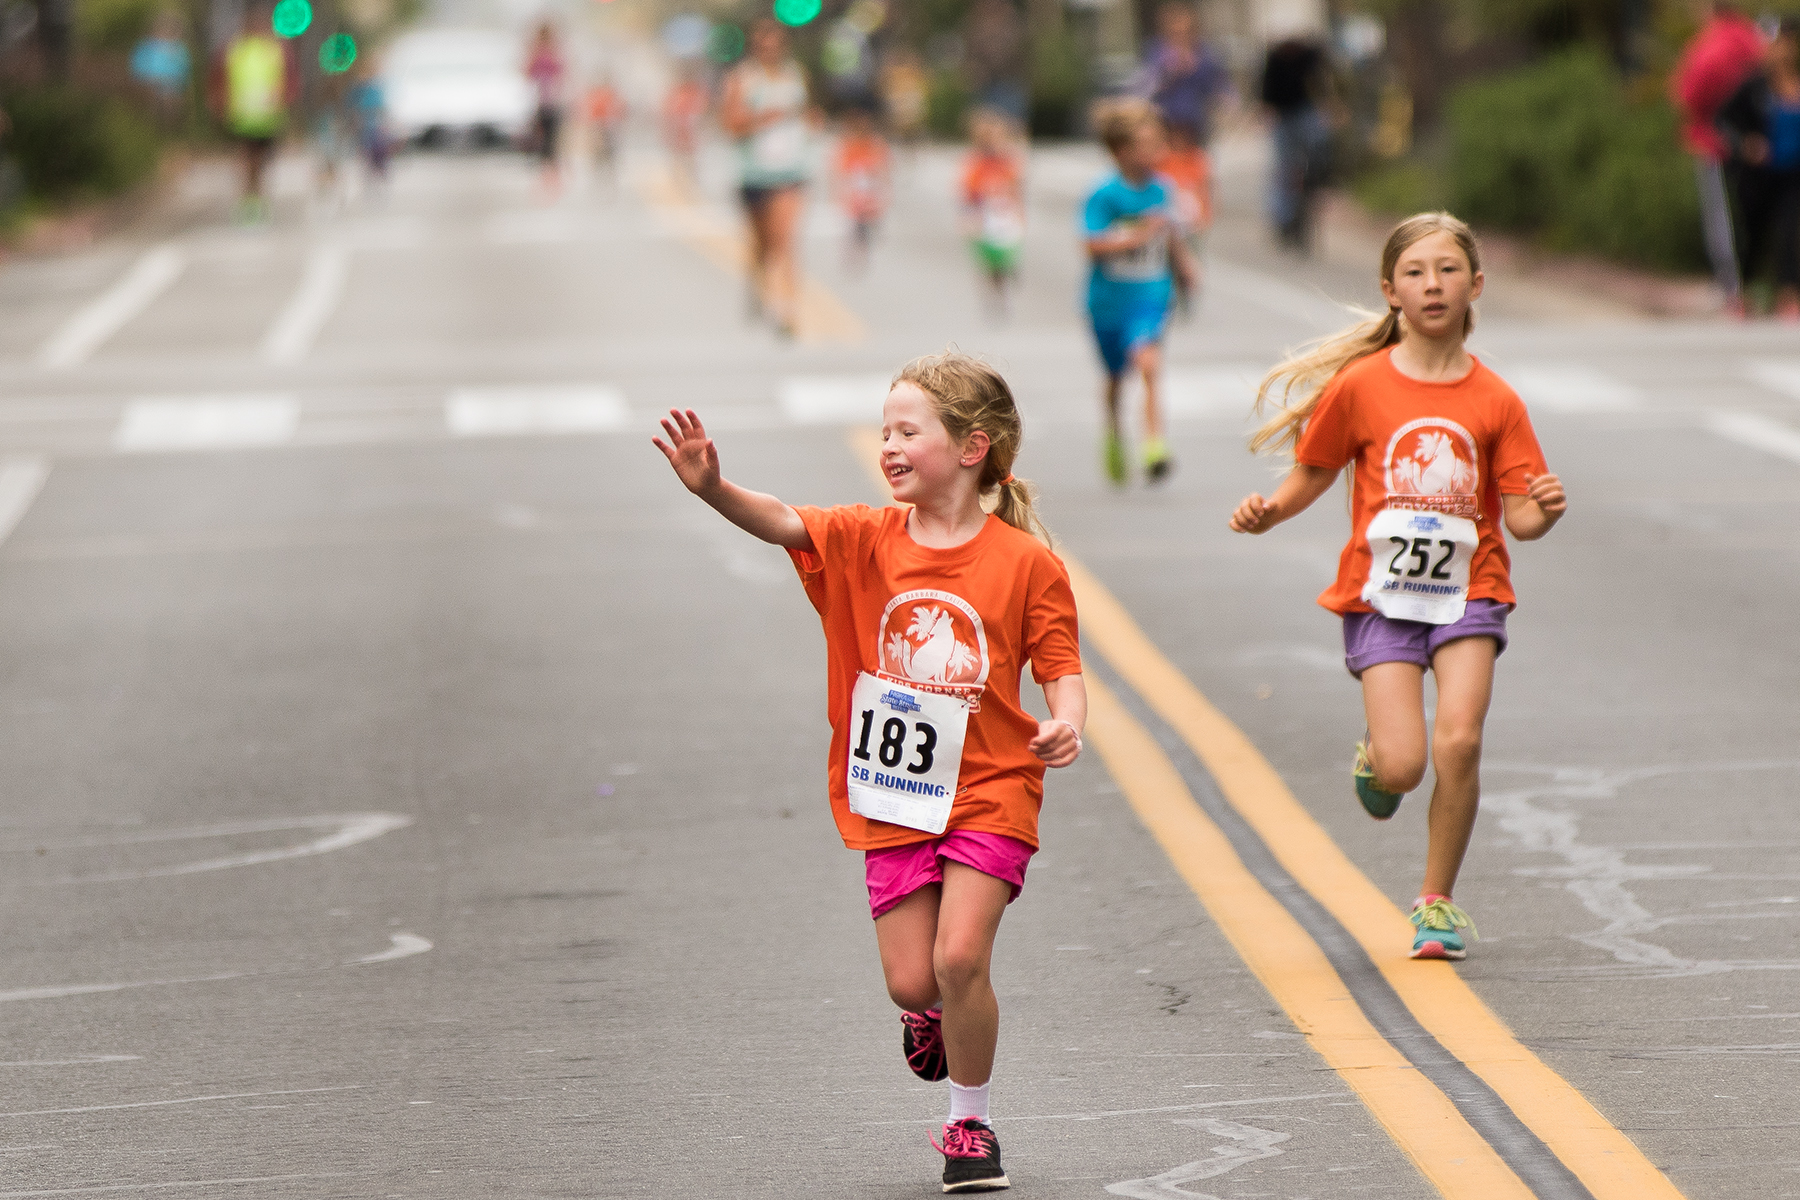 Scarlett Holian, 5, waives to the crowd during the 10/under age race on Saturday morning.